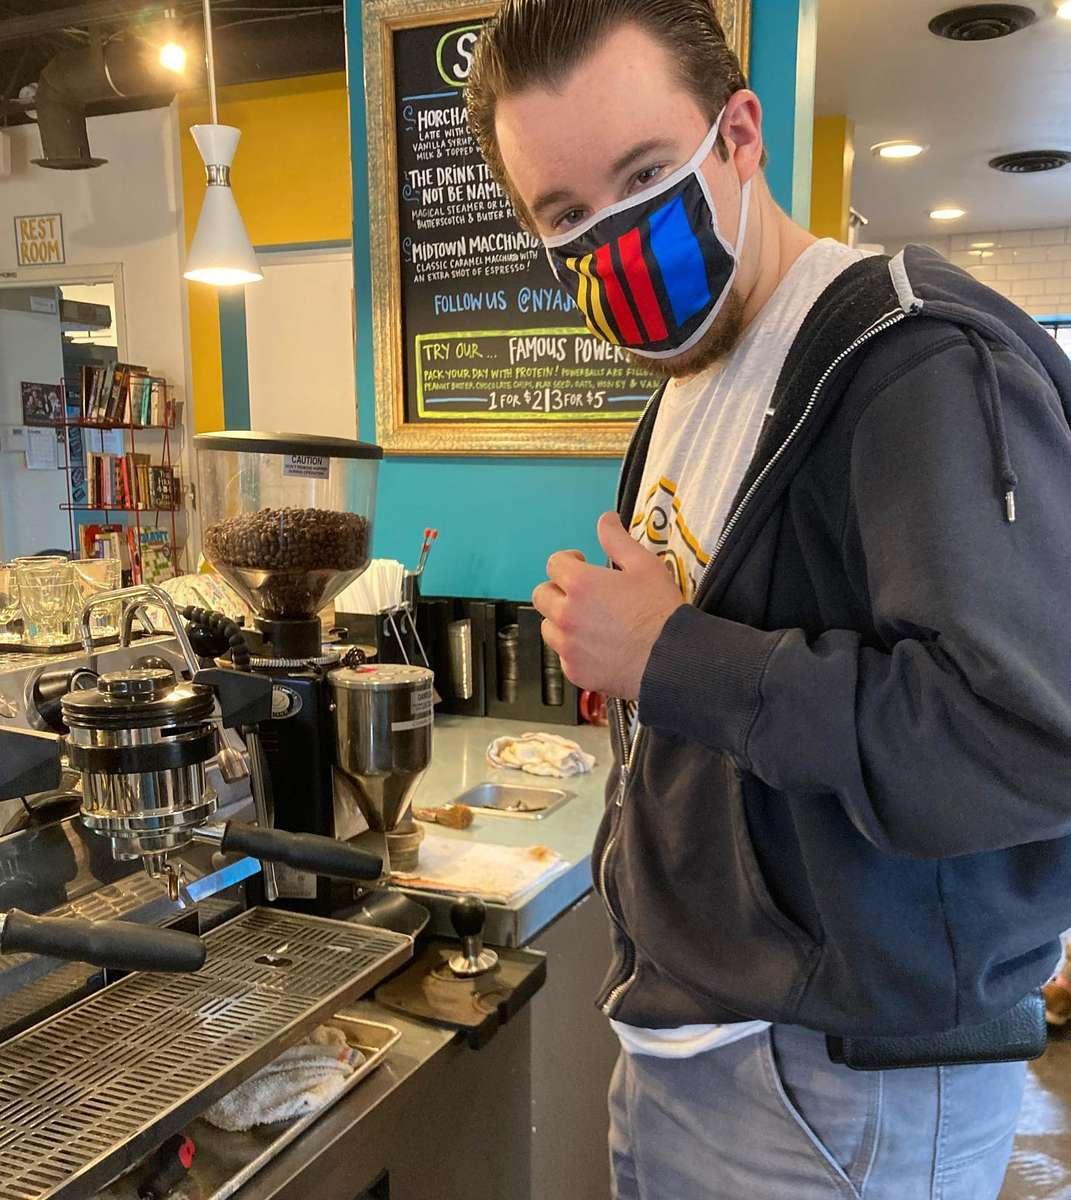 Brandon prepping coffee for the day